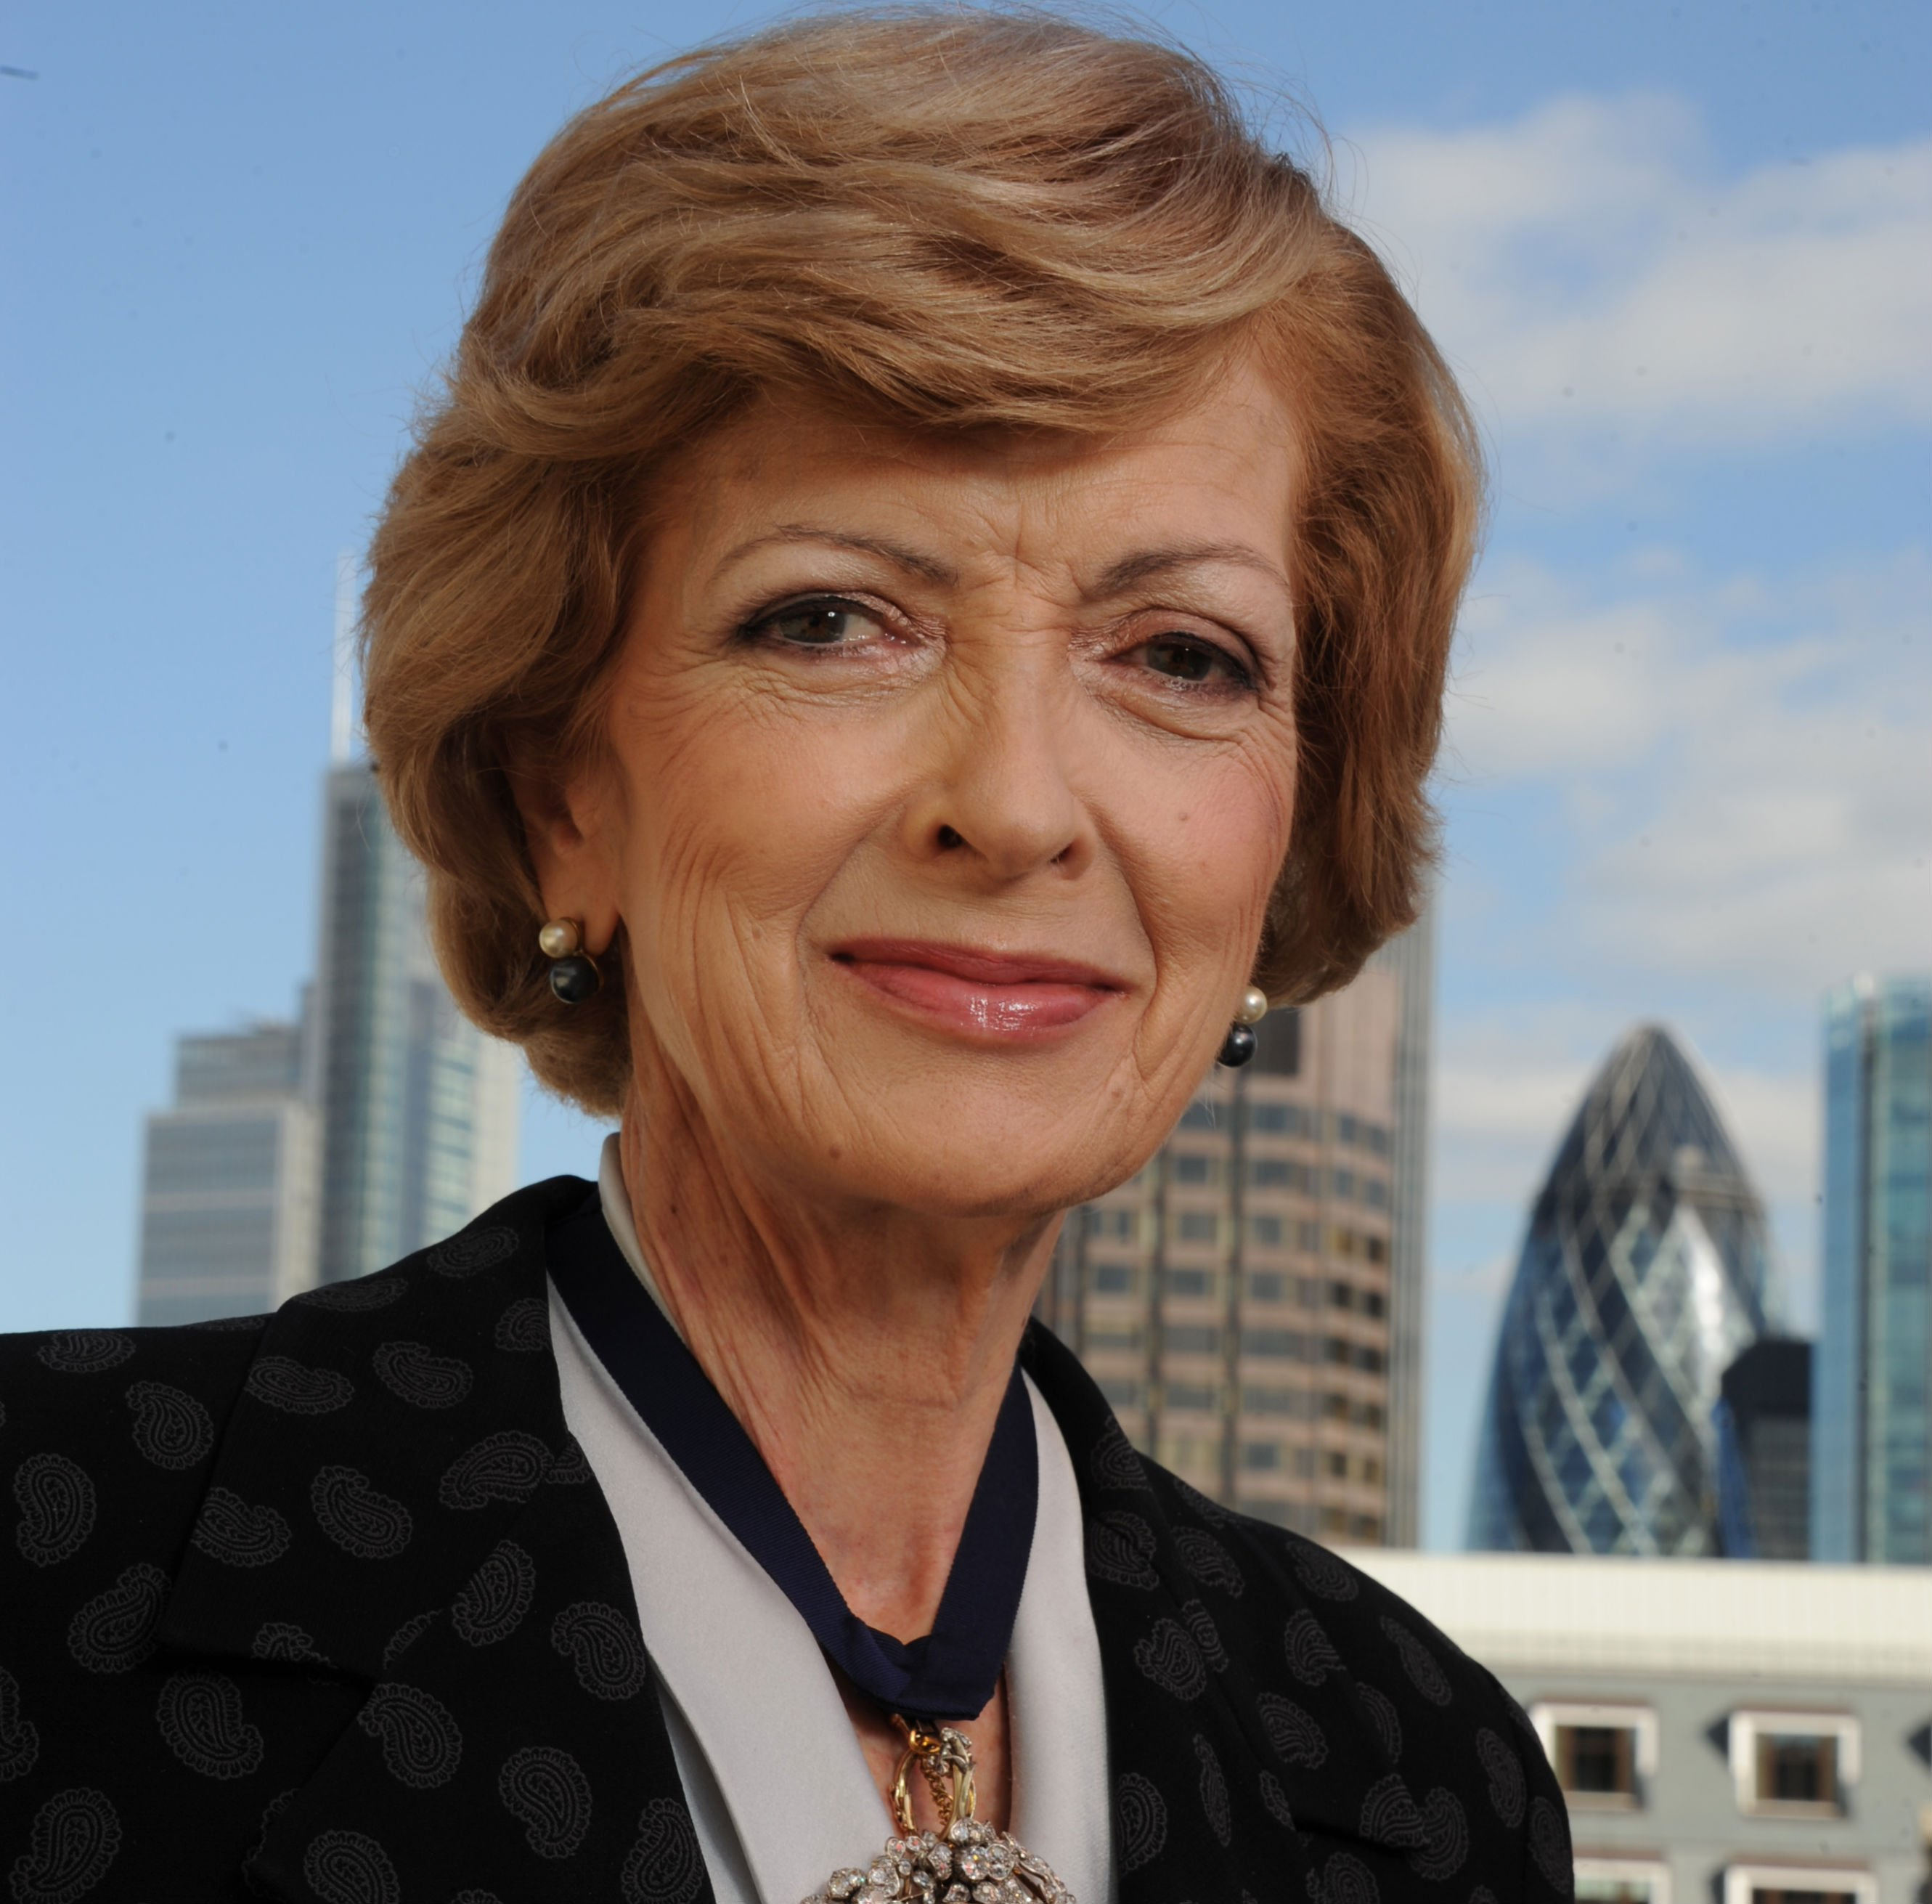 London's Lord Mayor Concerned Over Lack Of Women In Top Jobs In The GCC